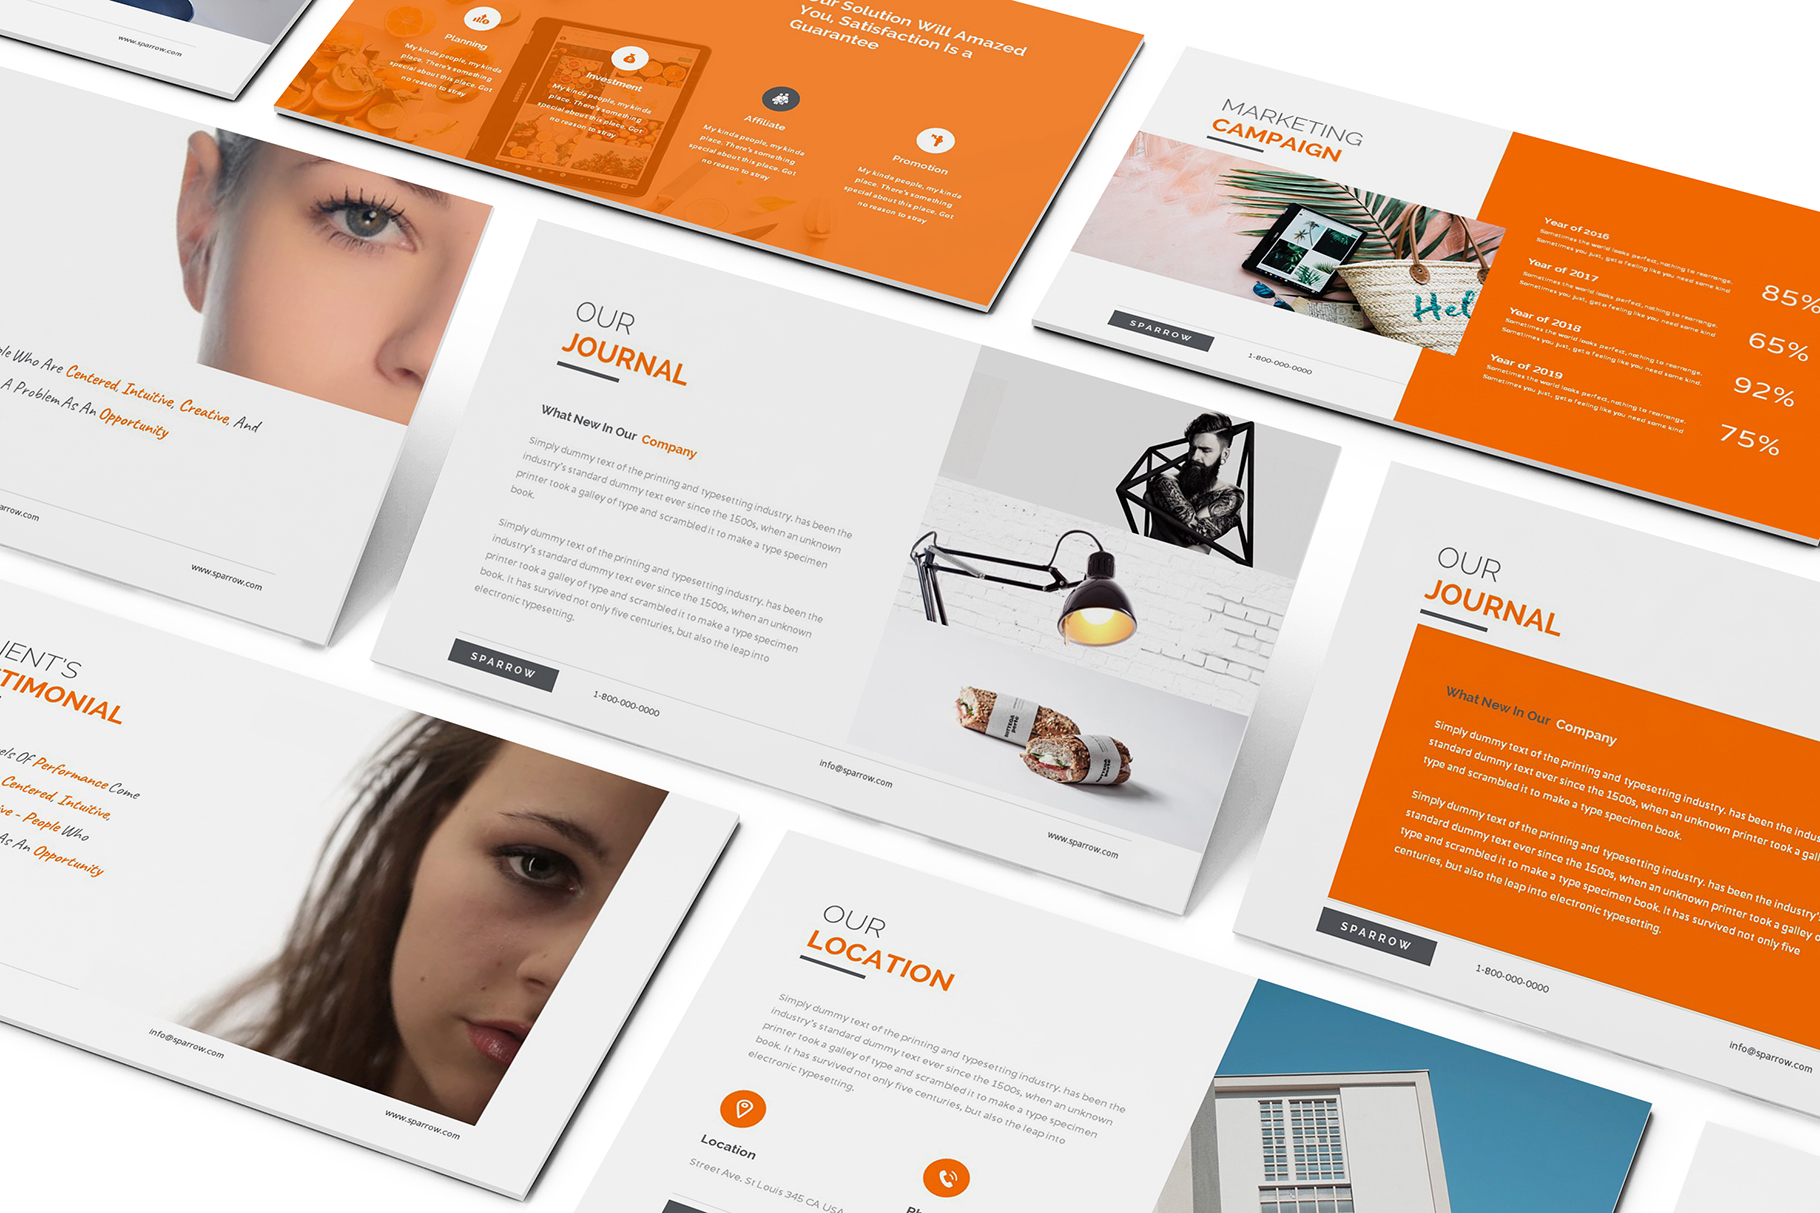 Sparrow - Creative Agency Powerpoint example image 8